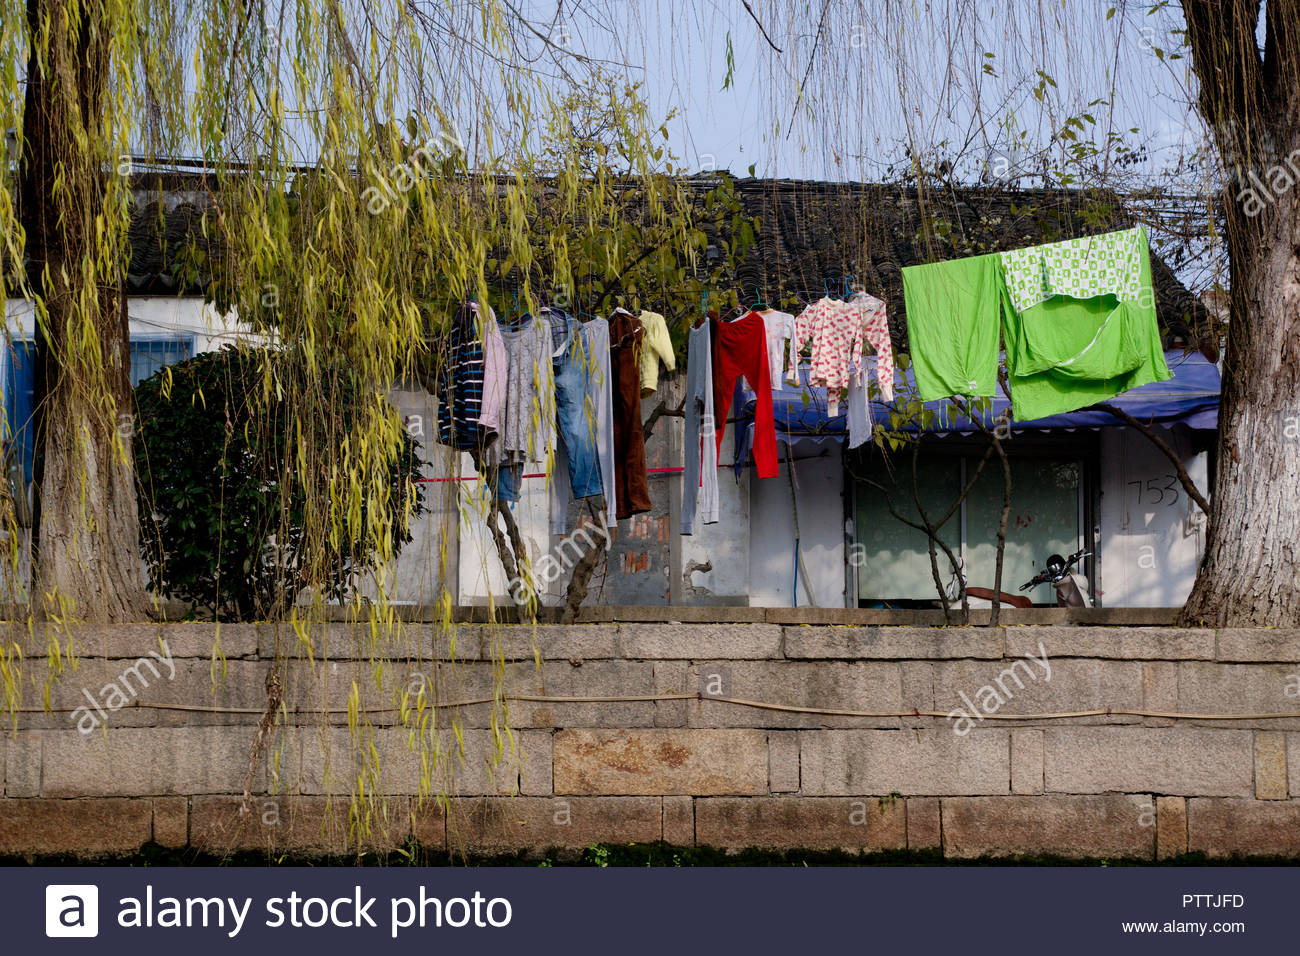 SUZHOU CANALS SCENERY WITH ORDINARY LIFE OF CHINESE PEOPLE, SUZHOU, PEOPLE'S REPUBLIC OF CHINA - Stock Image